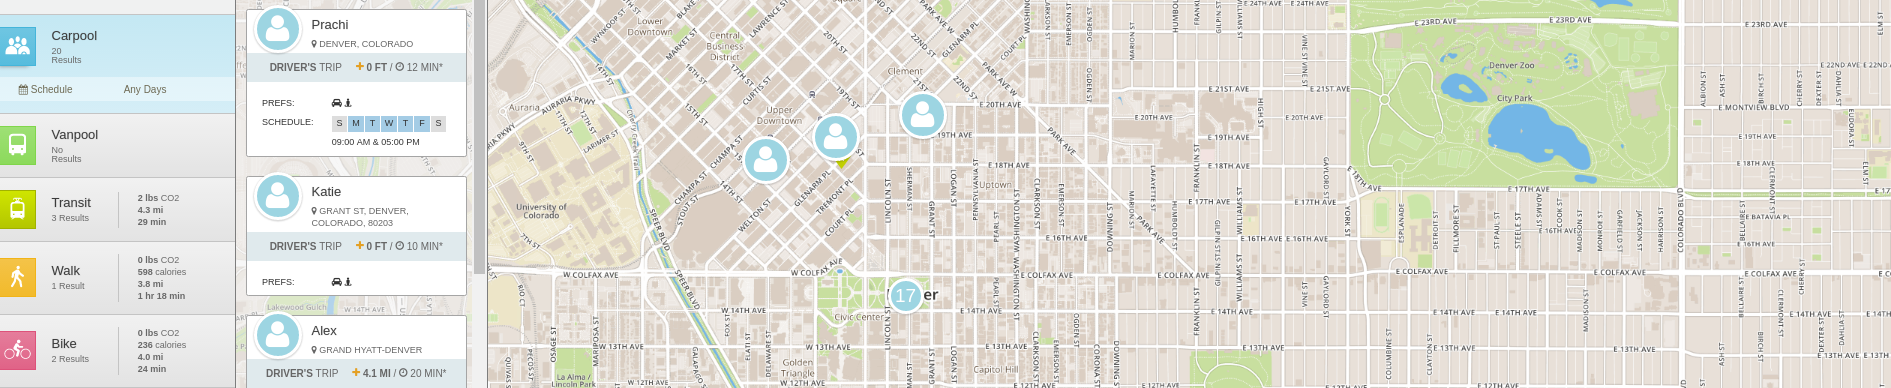 RideAmigos Commuter & Transportation Demand Management Platform